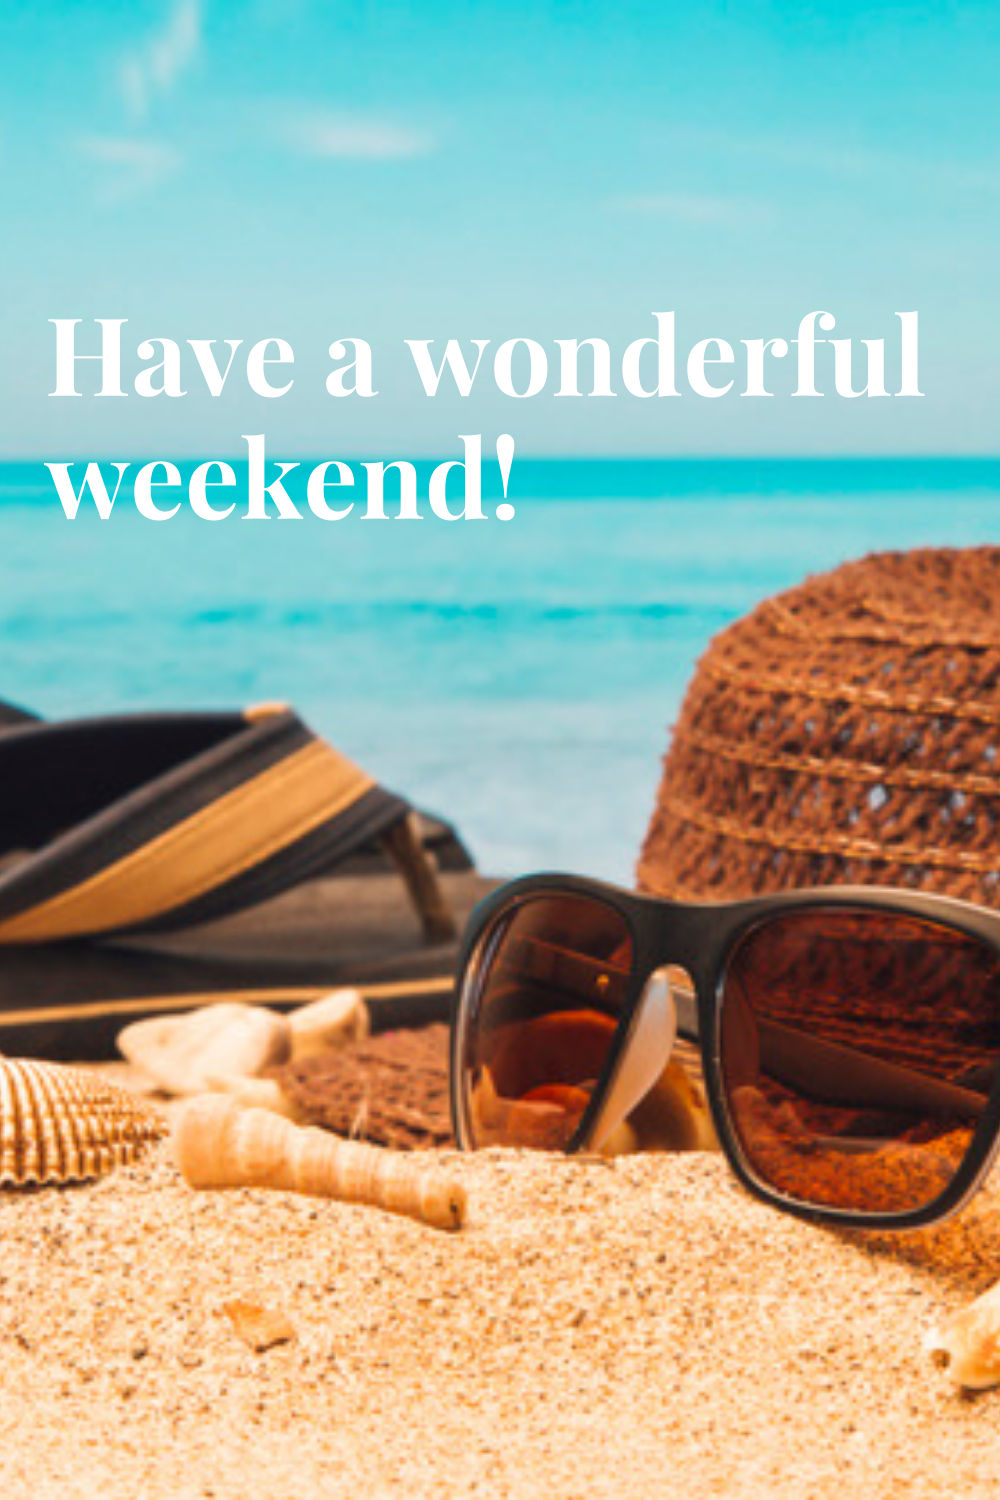 Yea! Finally, it is the weekend, time to relax and spend quality time with your family, do what you love to do, and de-stress whilst keeping yourself and your loved ones safe and healthy. #staypositive #travelsrilanka #beachhotelshikka #hikkaduwa #bestofsrilanka #srilankatravel #beachhotelsinsrilanka #positivevibes #bestsrilankahotels #hikkaduwahotels #beachhotel #beachvacation #getoutdoors⠀#traveldeal #traveldestinations #travelhikka #beachhotel #beachvibes #srilankanstyle #instatravel